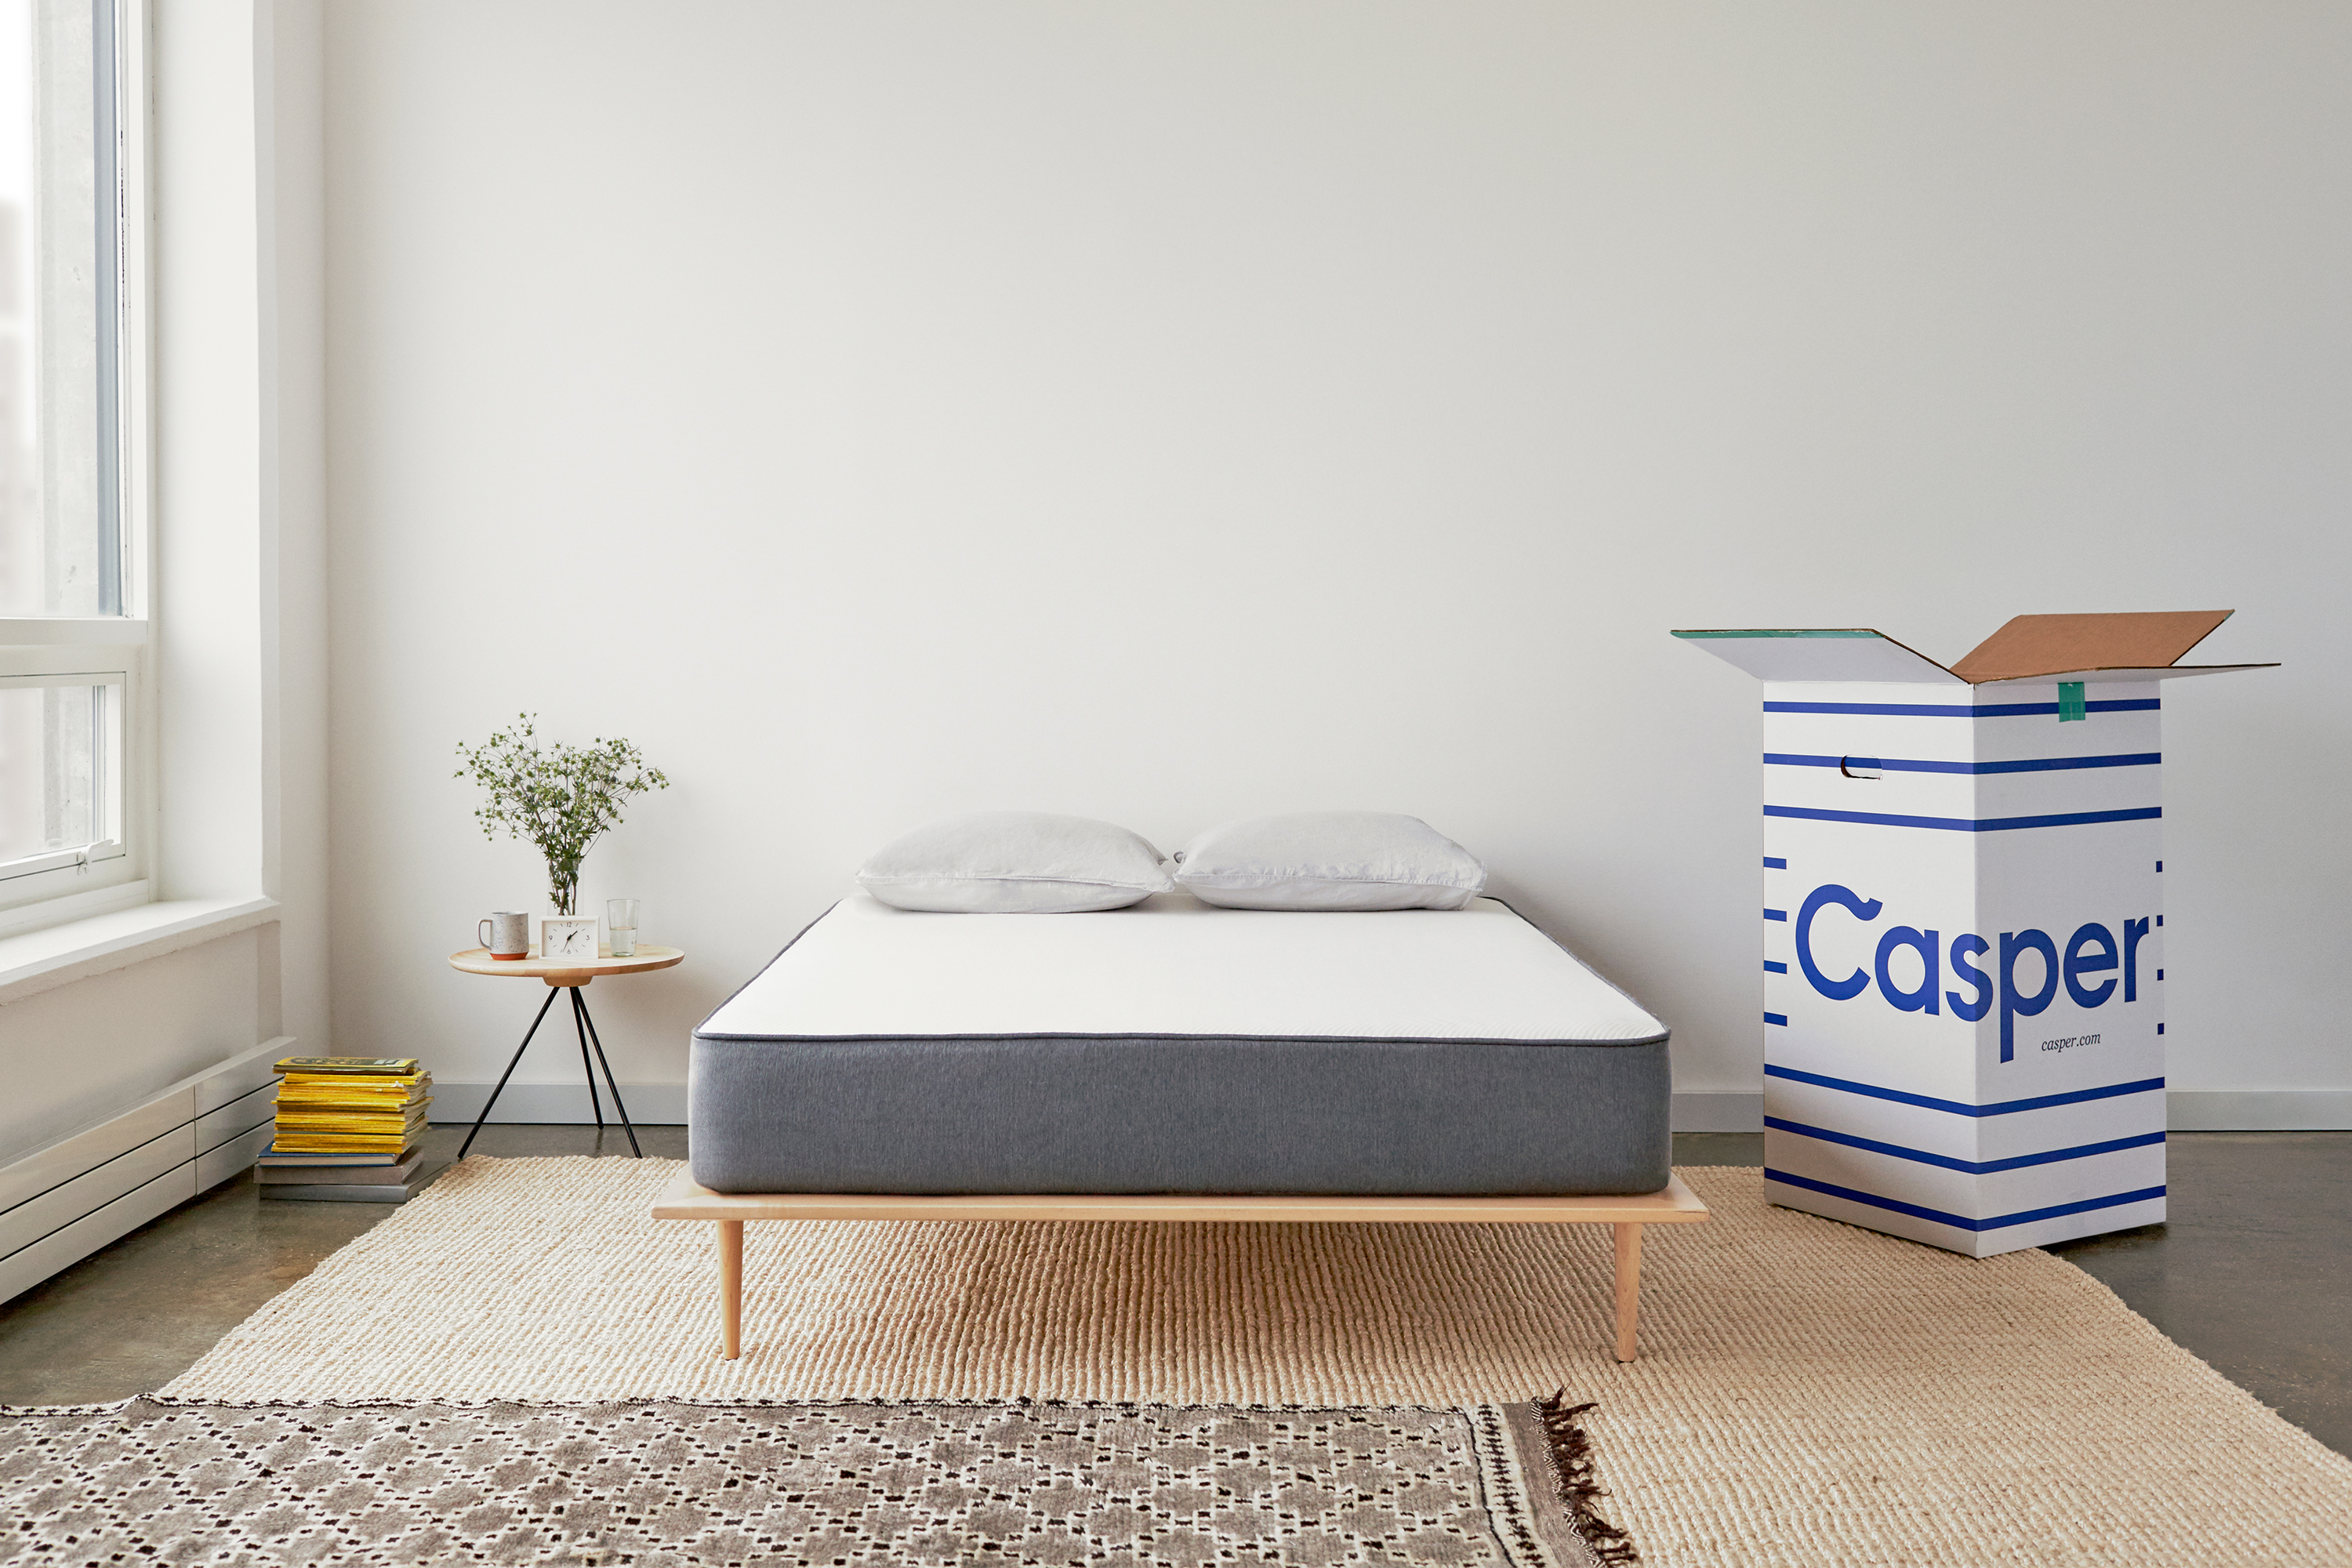 Casper Mattress at West Elm